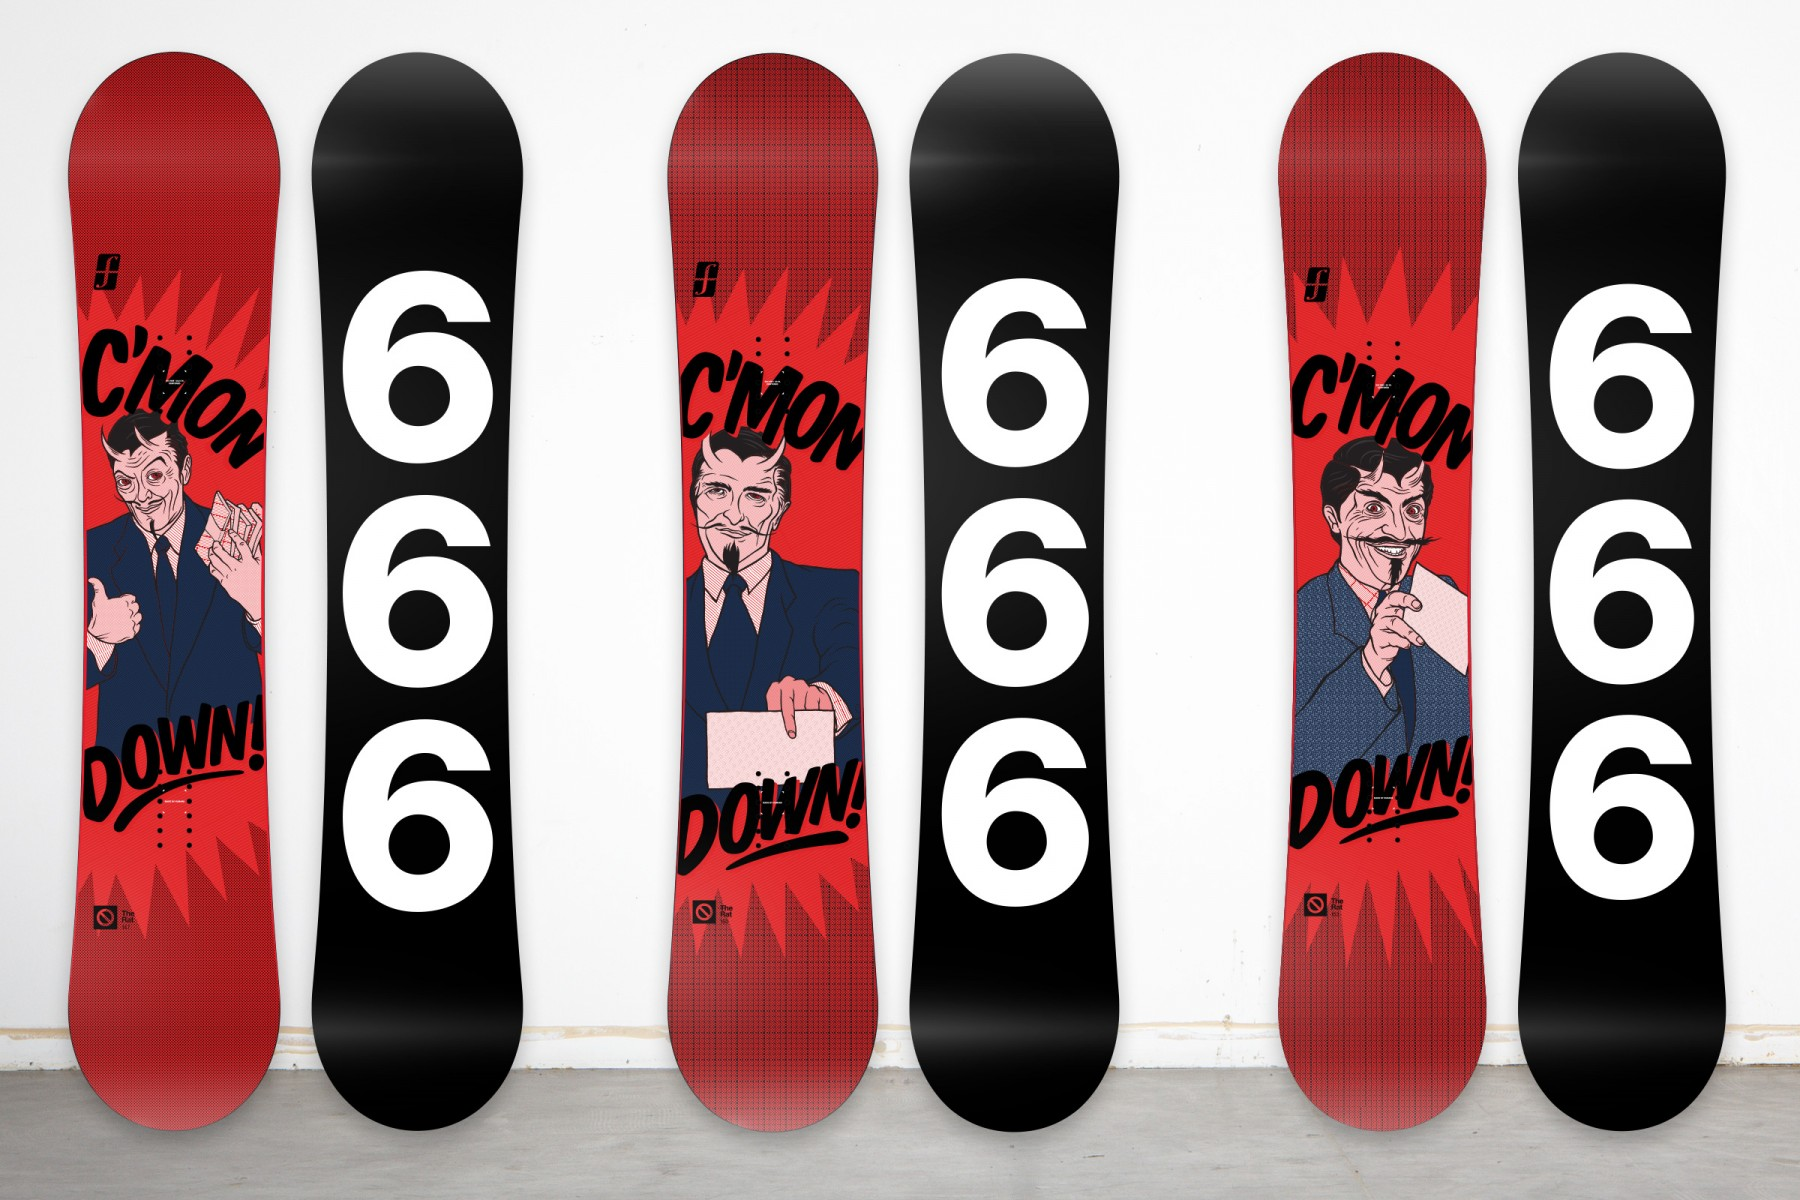 2013 Boards